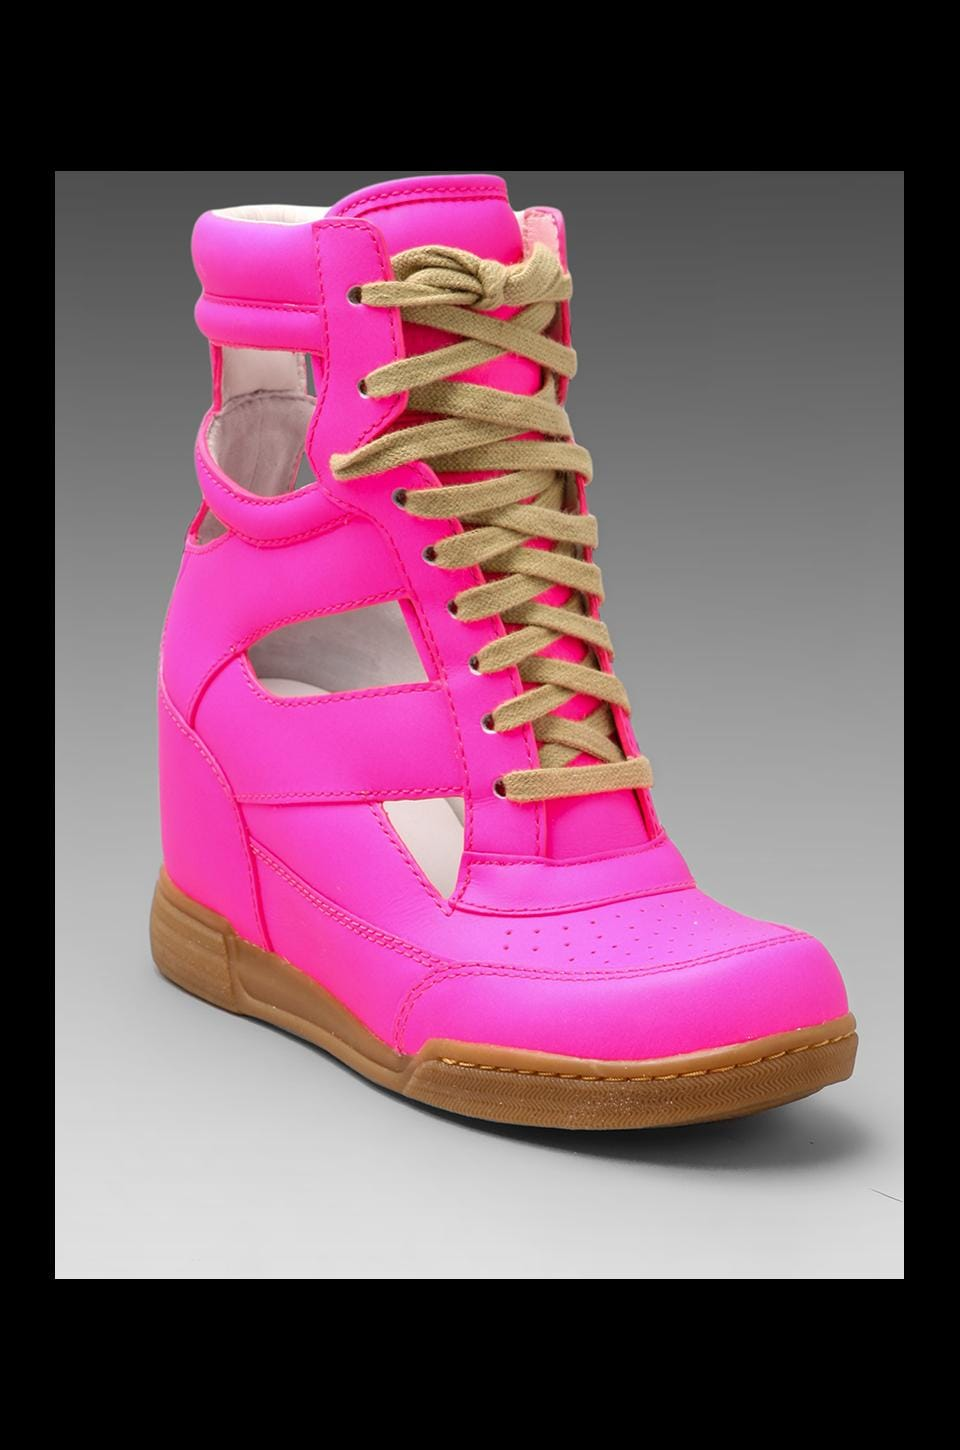 Marc by Marc Jacobs Neon Cut Out Wedge Sneaker in Pink